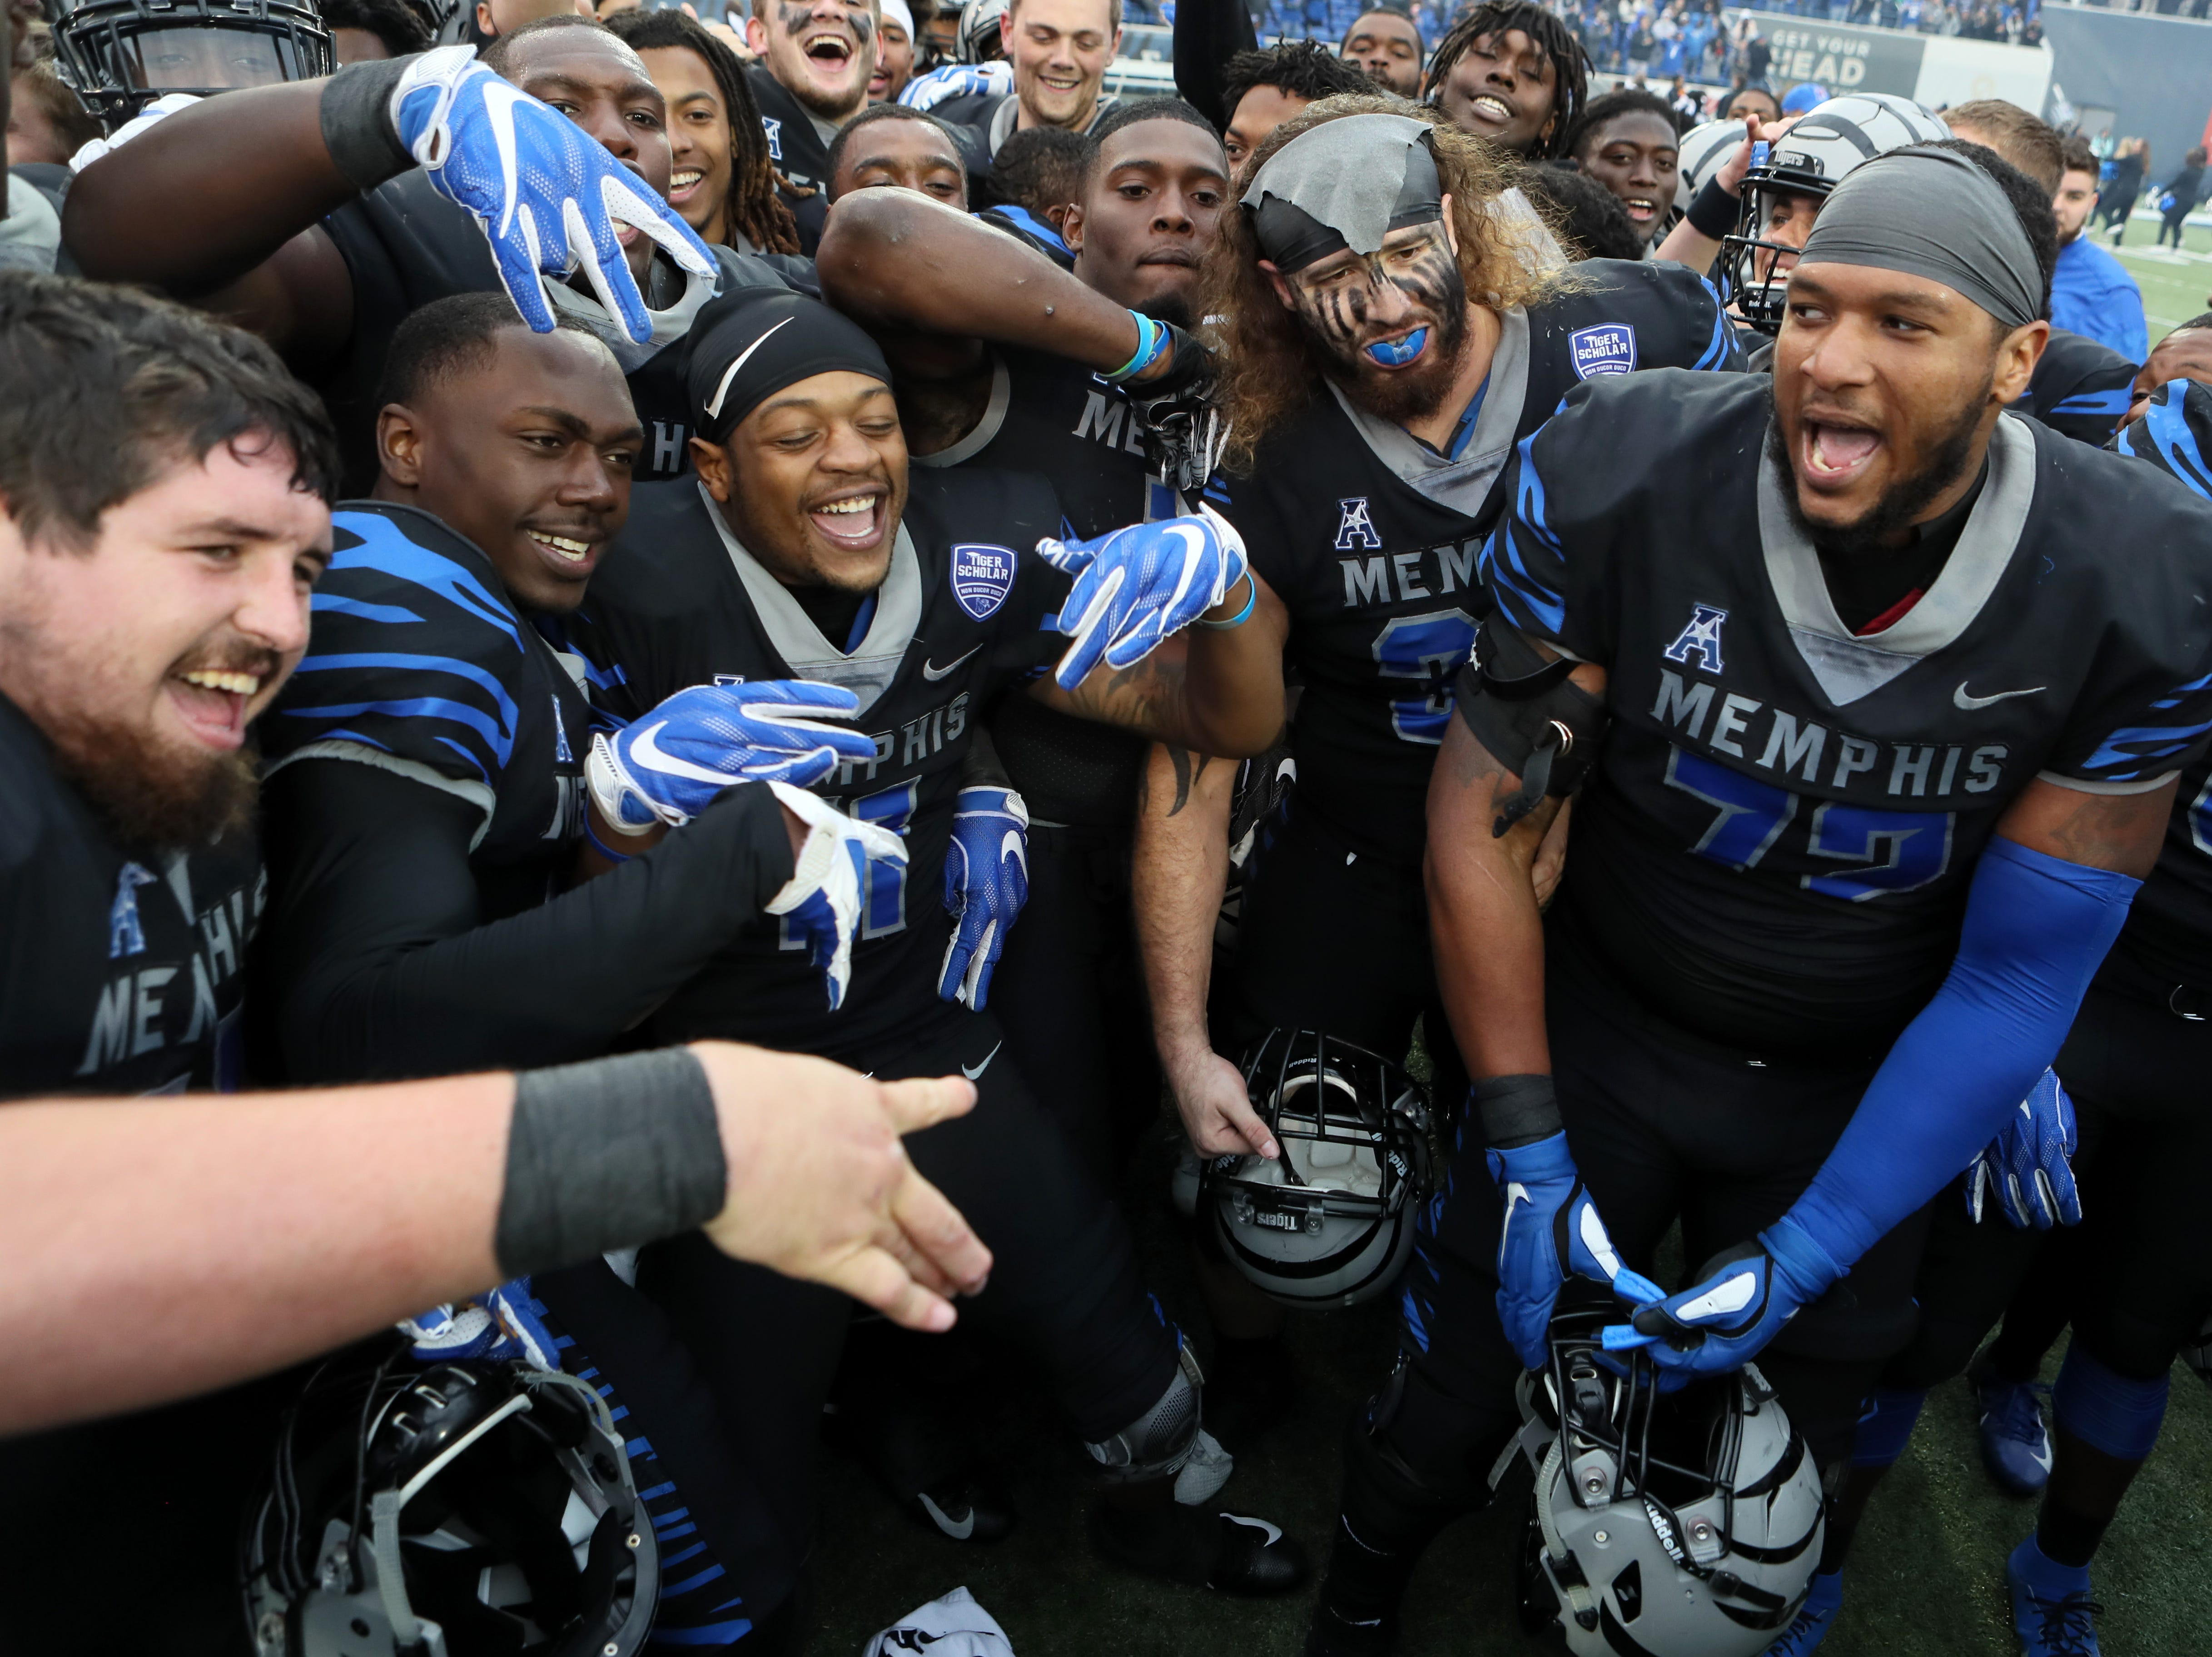 Memphis players celebrate as the Tigers win the AAC West title 52-31 against Houston at the Liberty Bowl on Friday, Nov. 23, 2018.